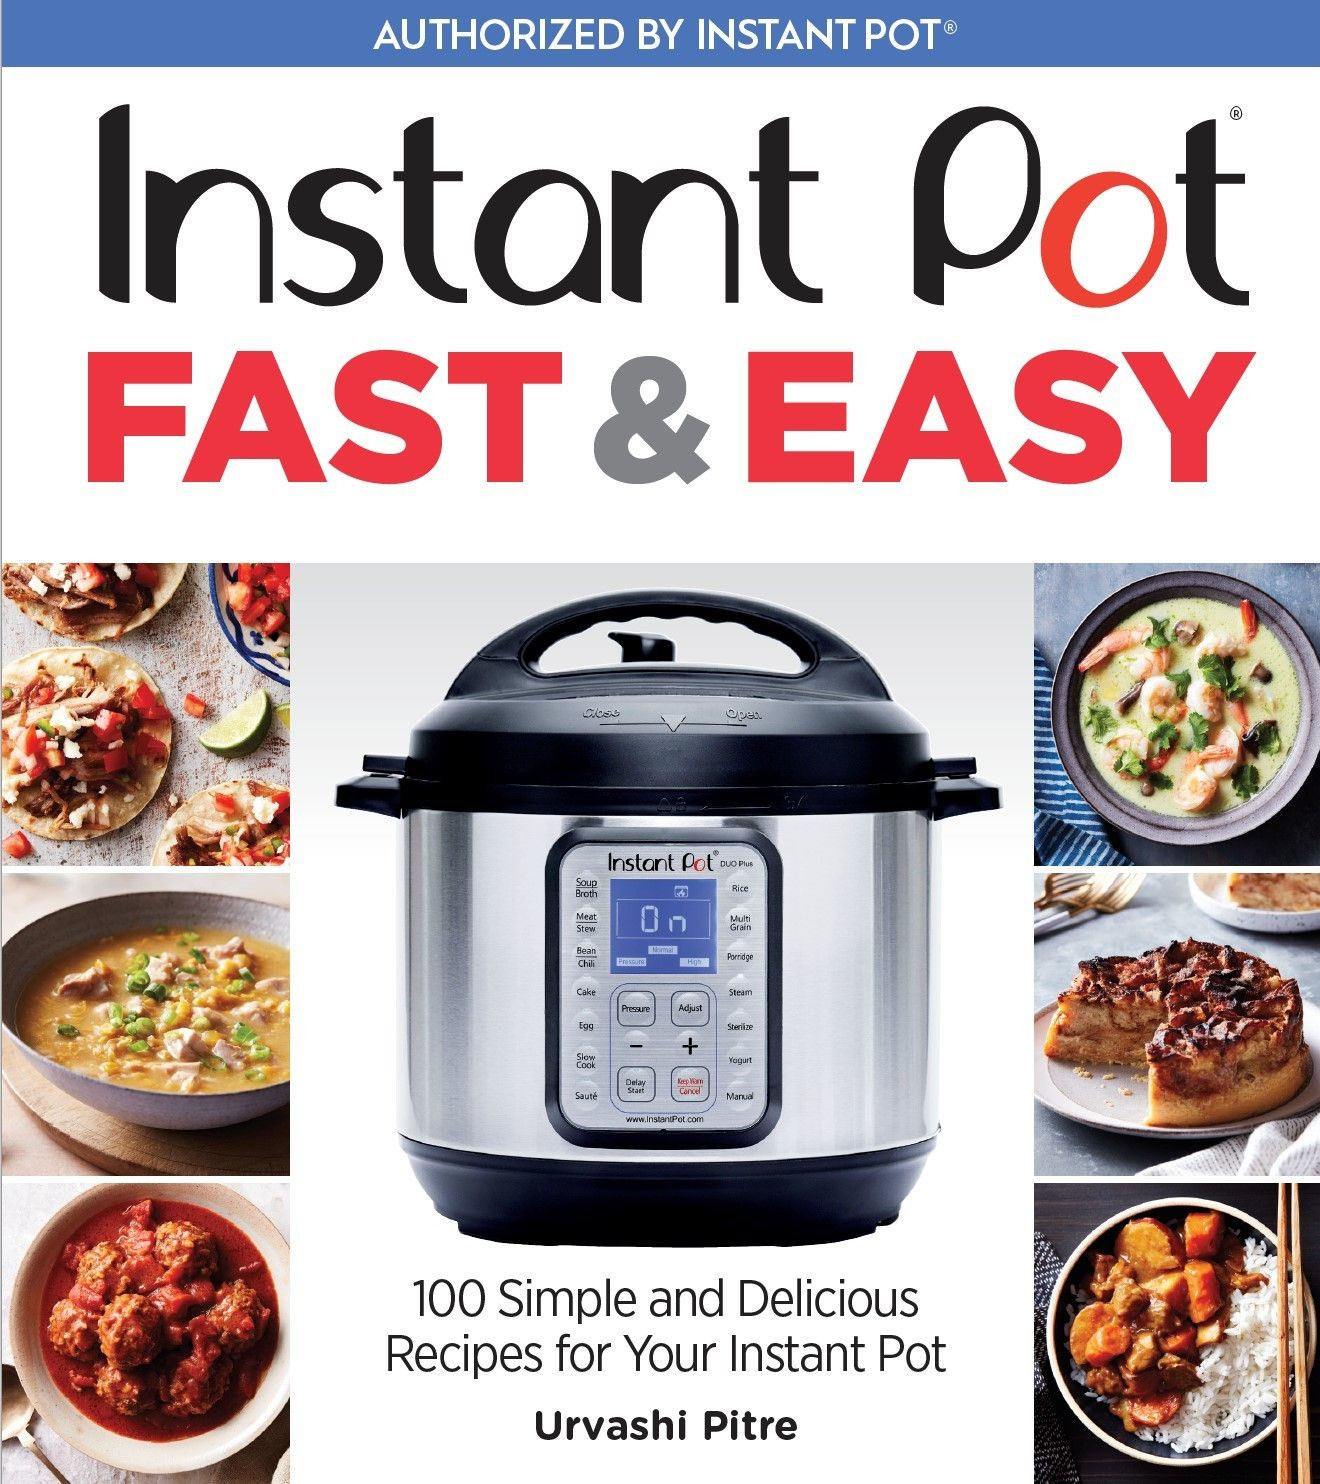 9 Instant Pot Indian Recipes for Rich, Comforting Flavor Fast